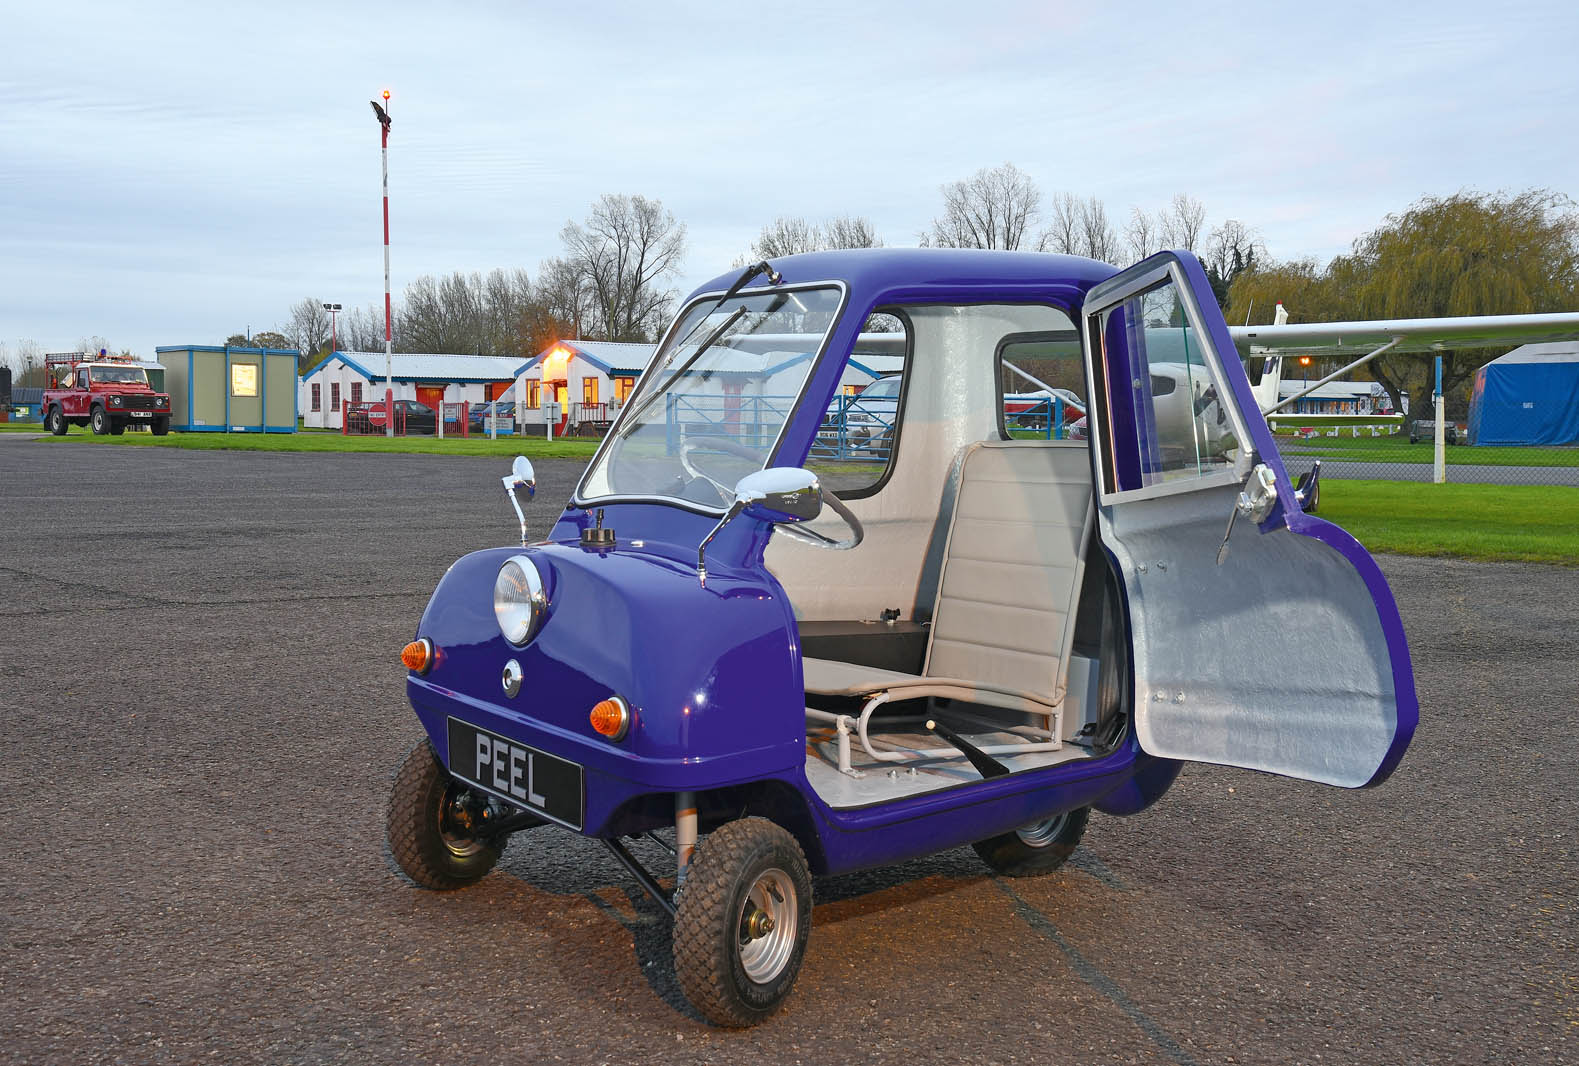 peel p50 crash images galleries with. Black Bedroom Furniture Sets. Home Design Ideas